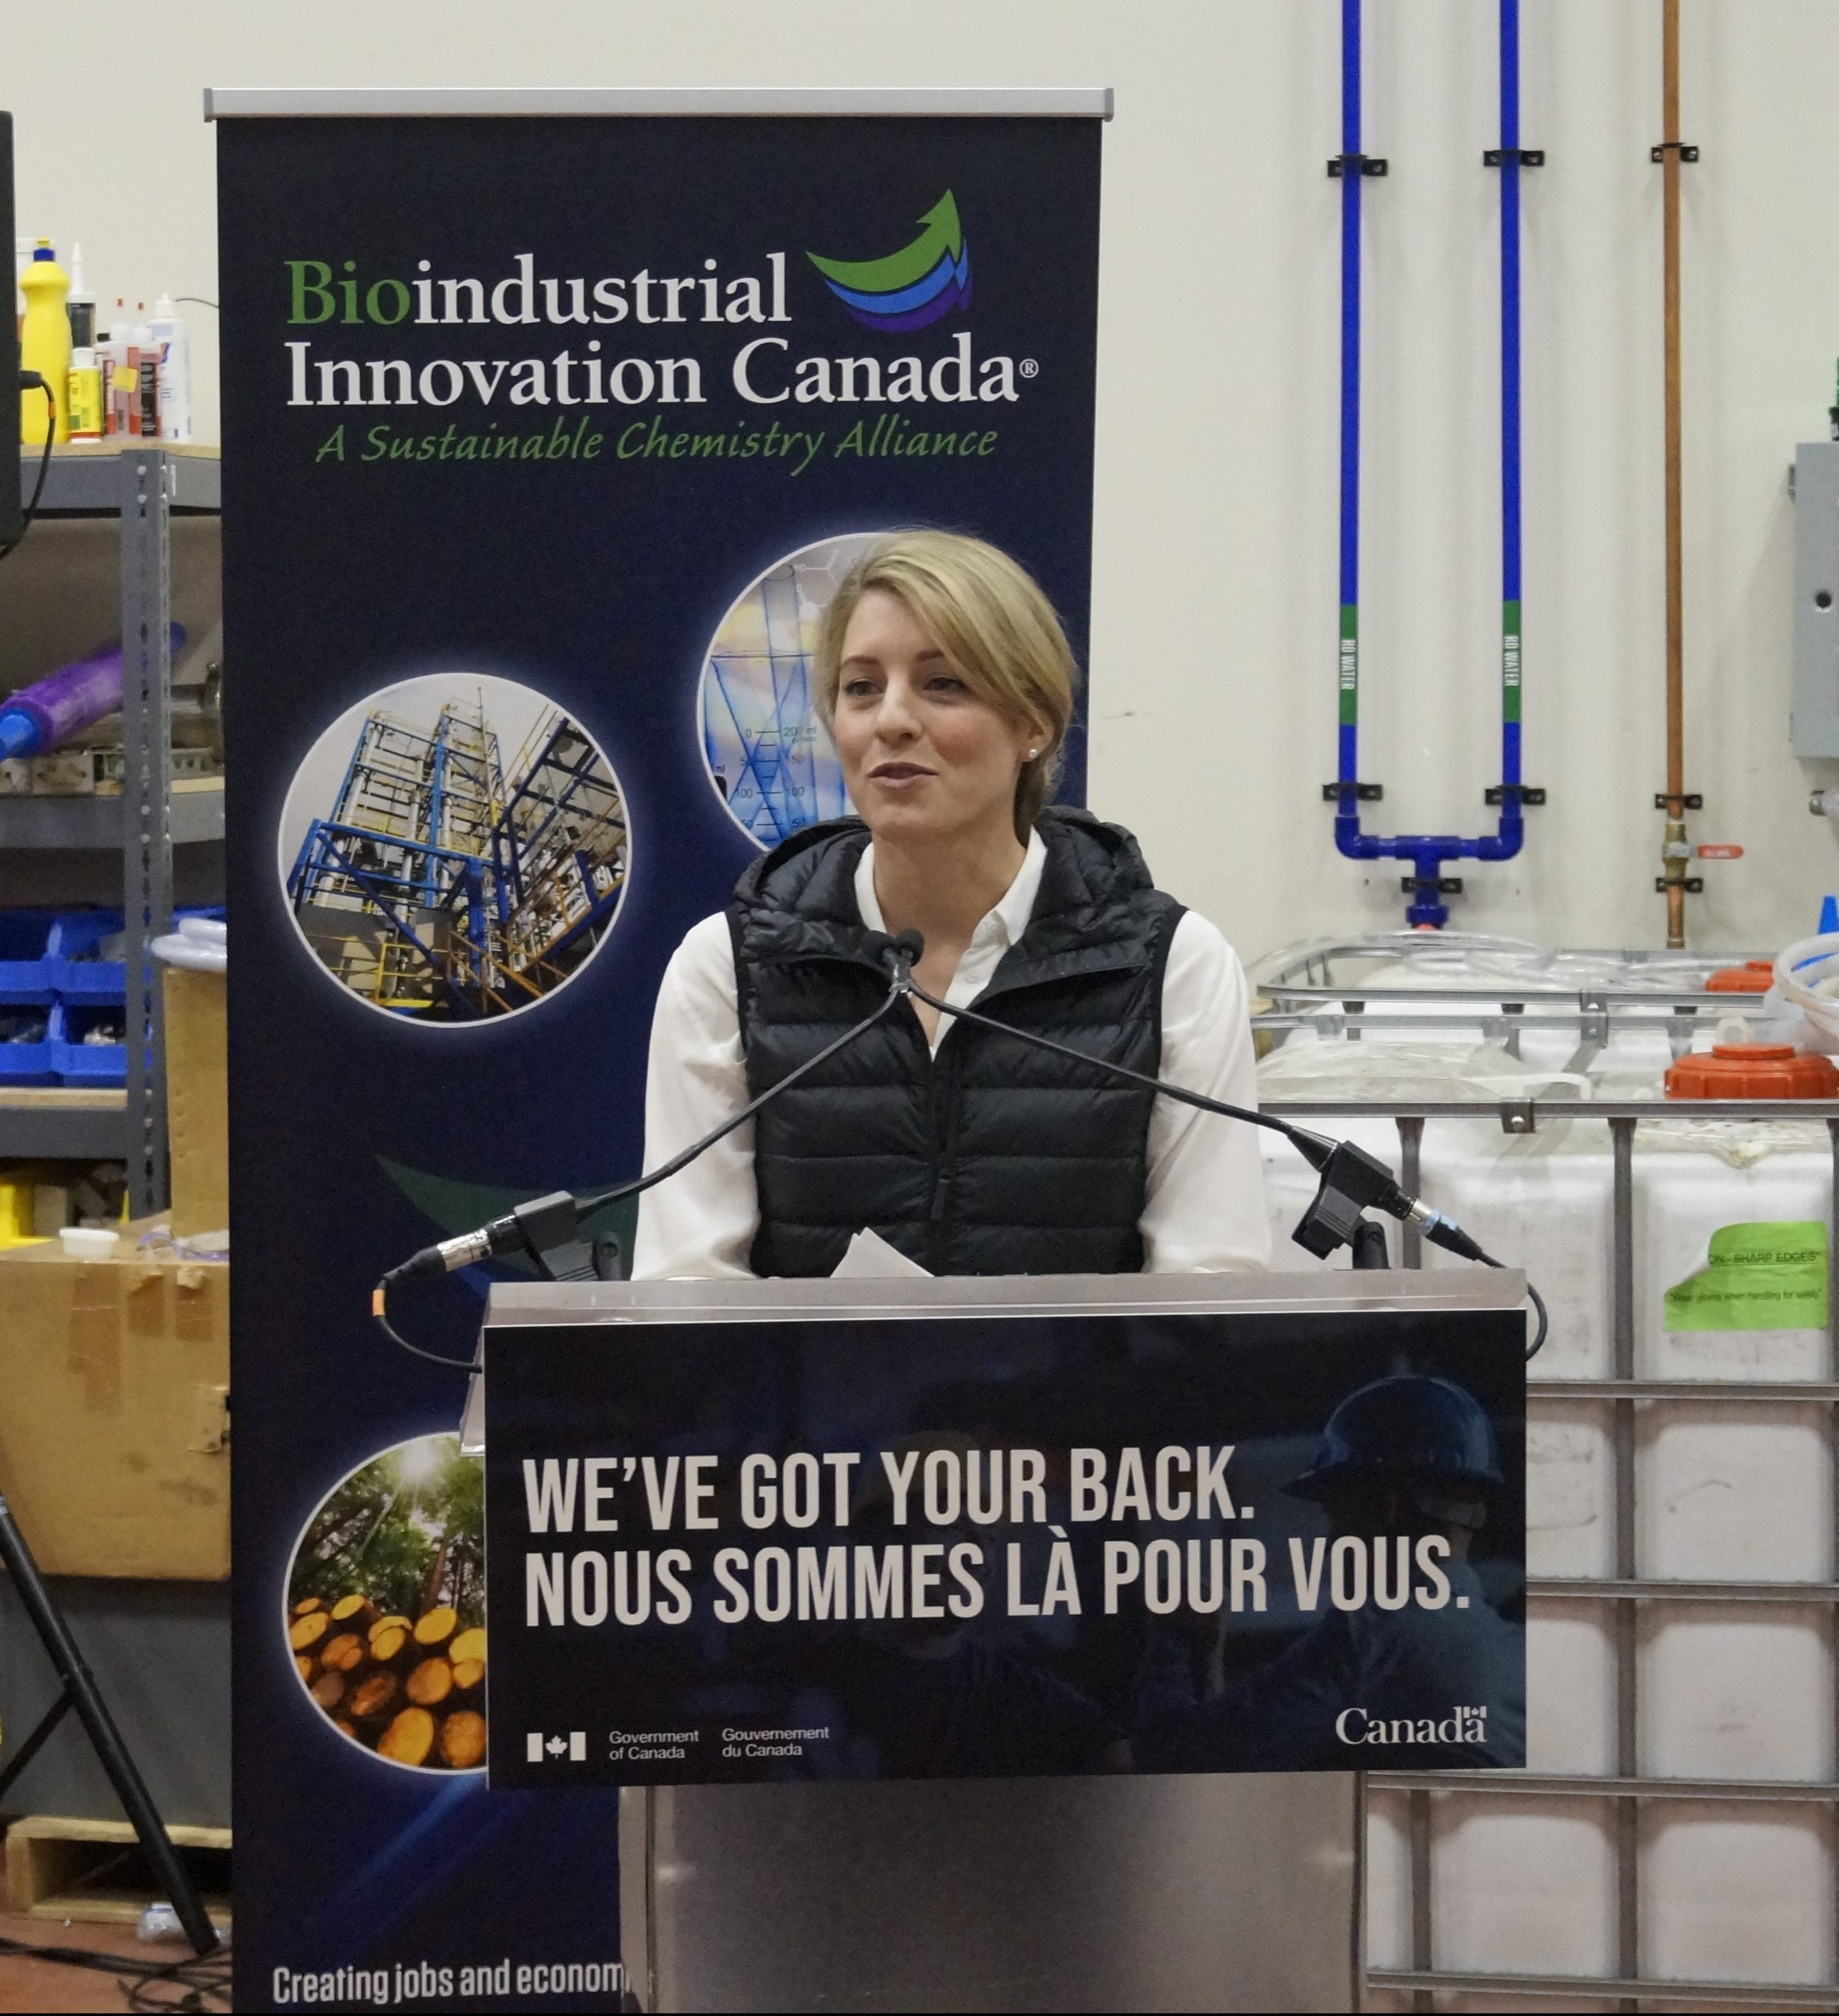 Bioindustrial Innovation Canada Gets